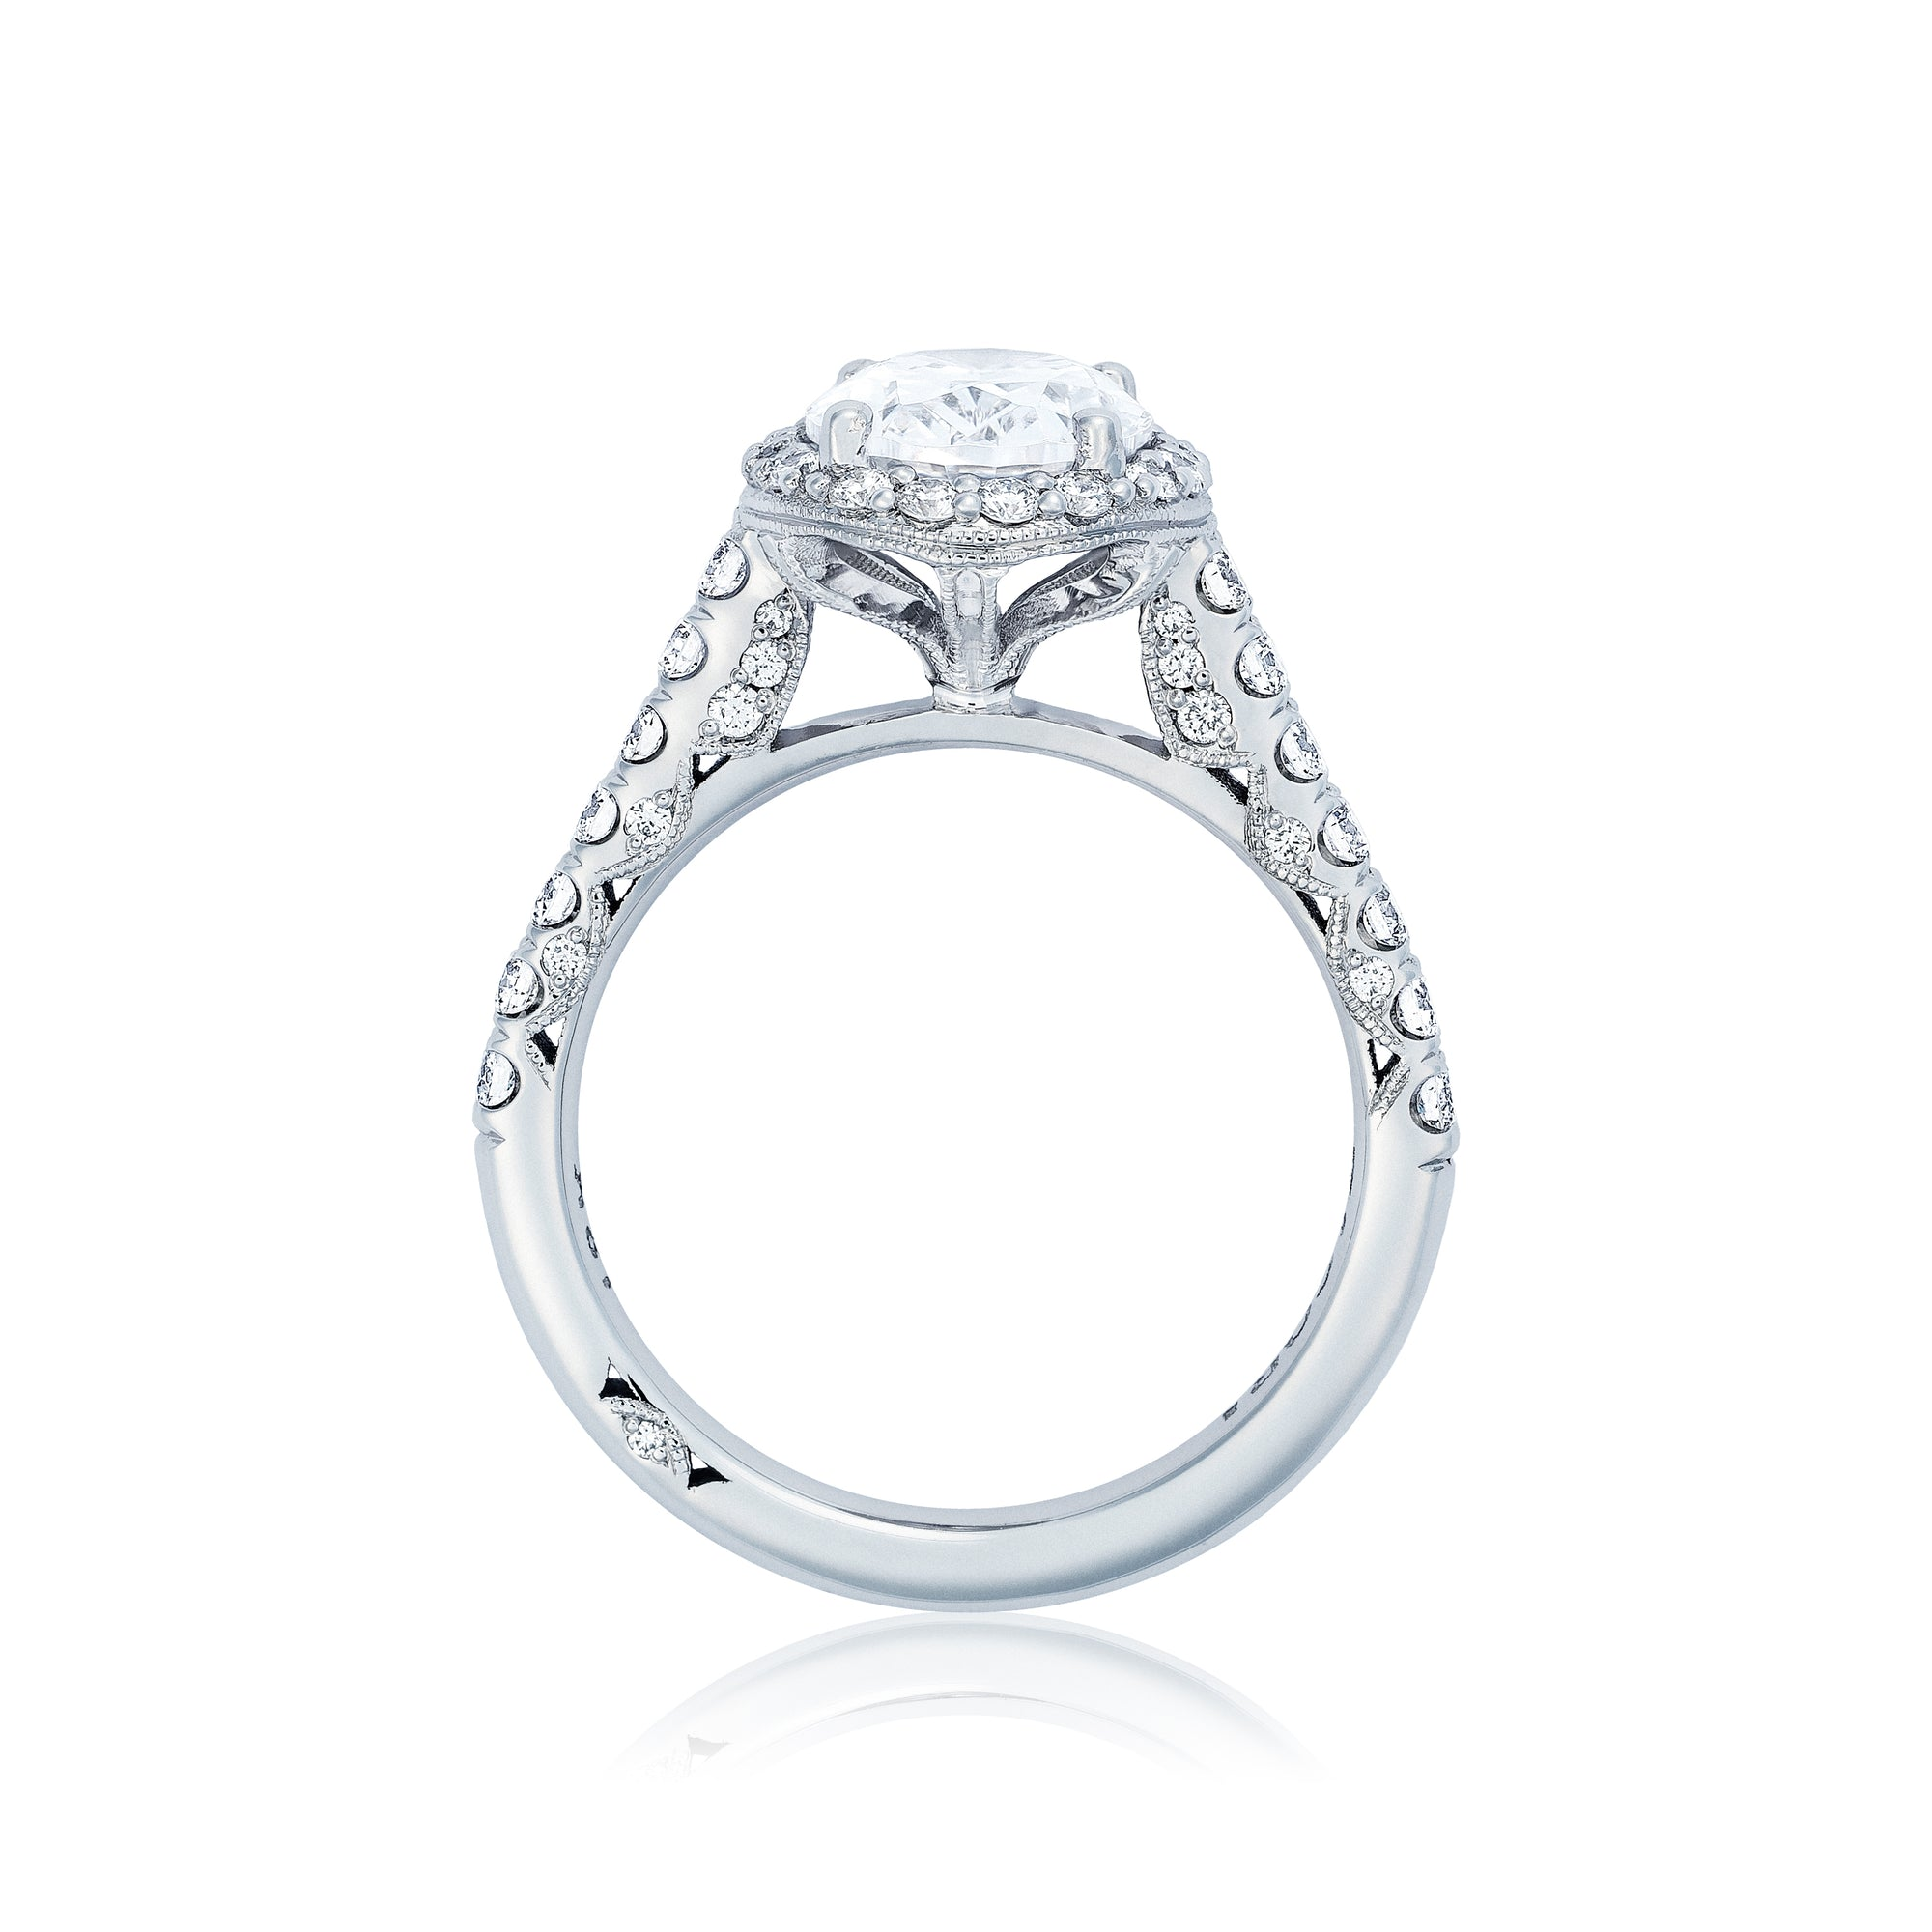 portfolio crossover diamond rose rings durham ring organic engagement oval website